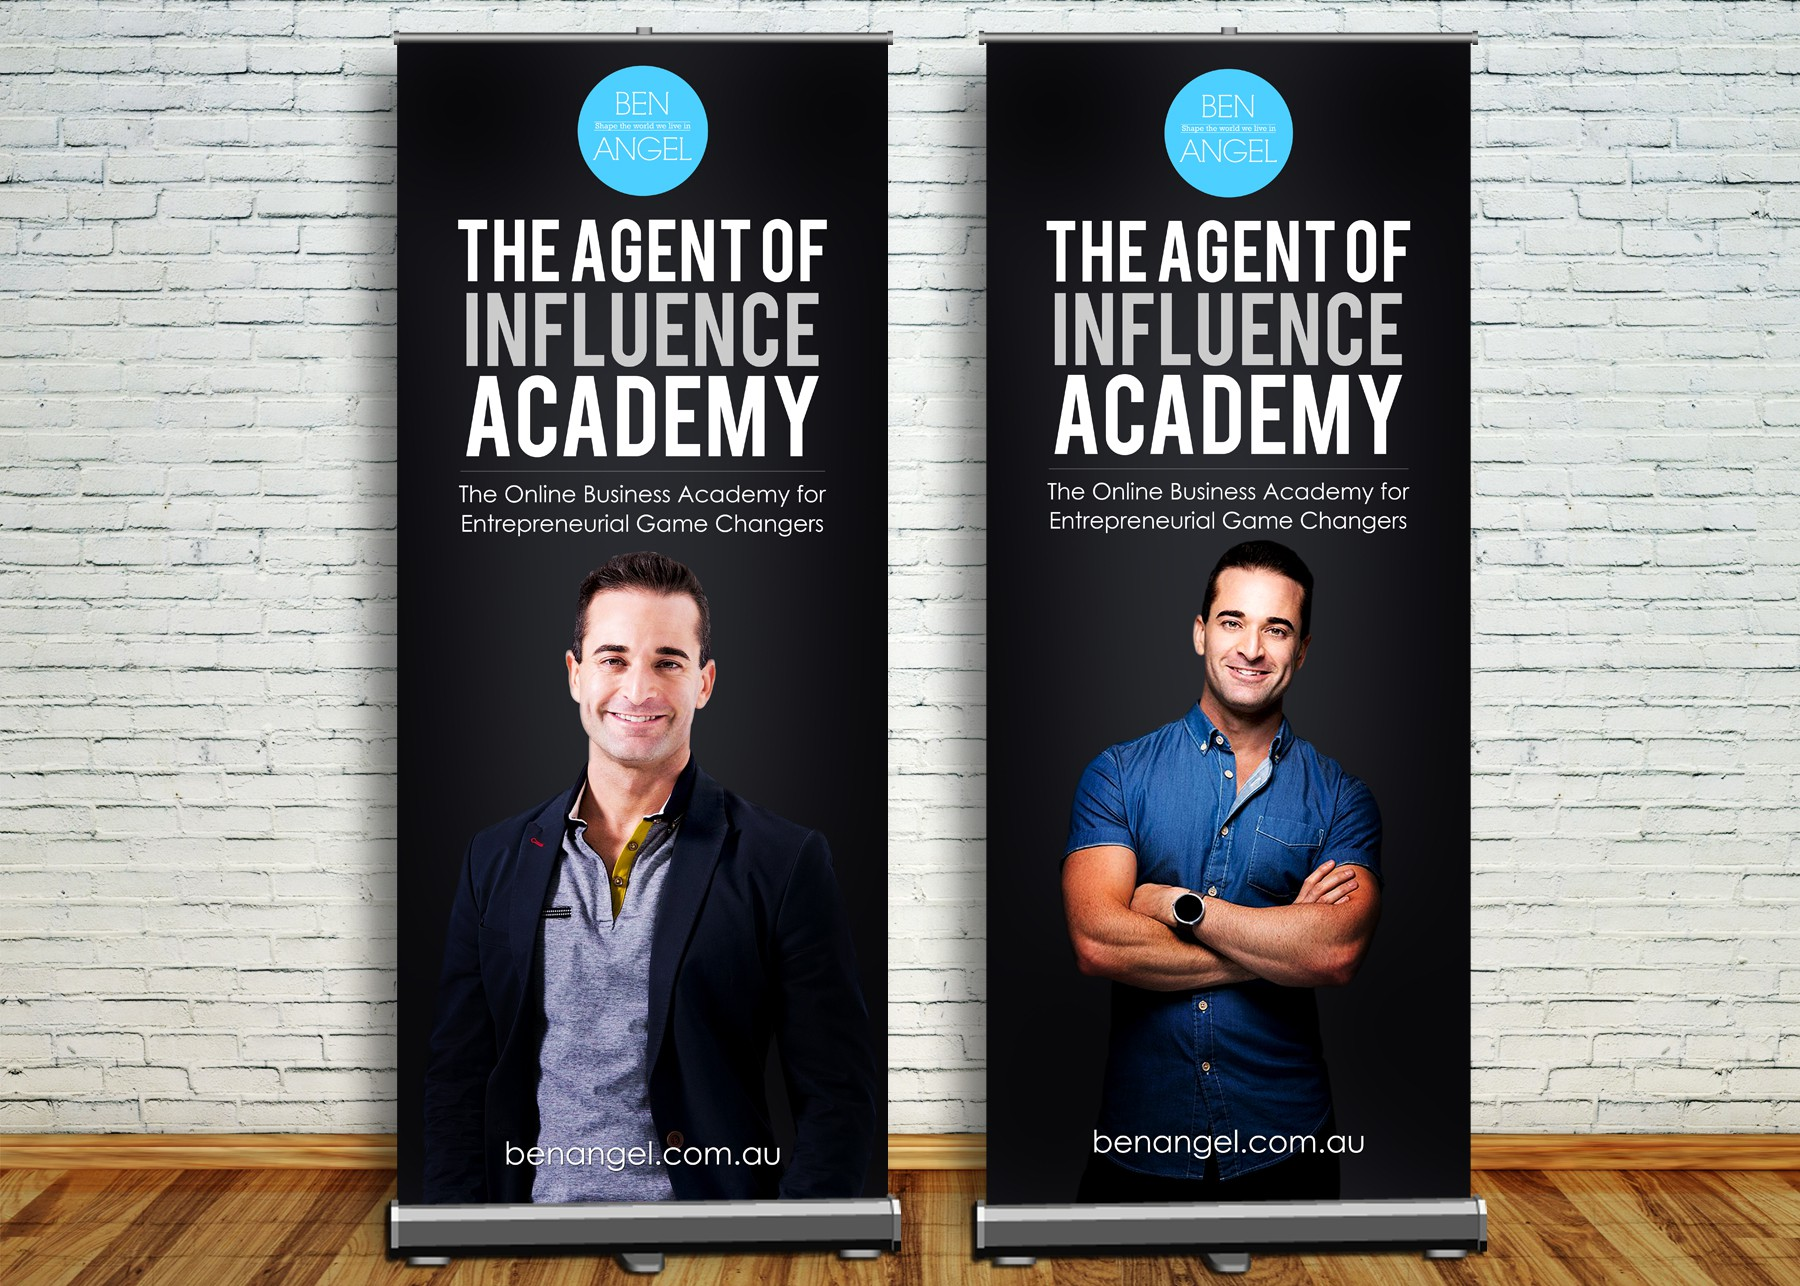 Creating banner design for The Agent of Influence Academy